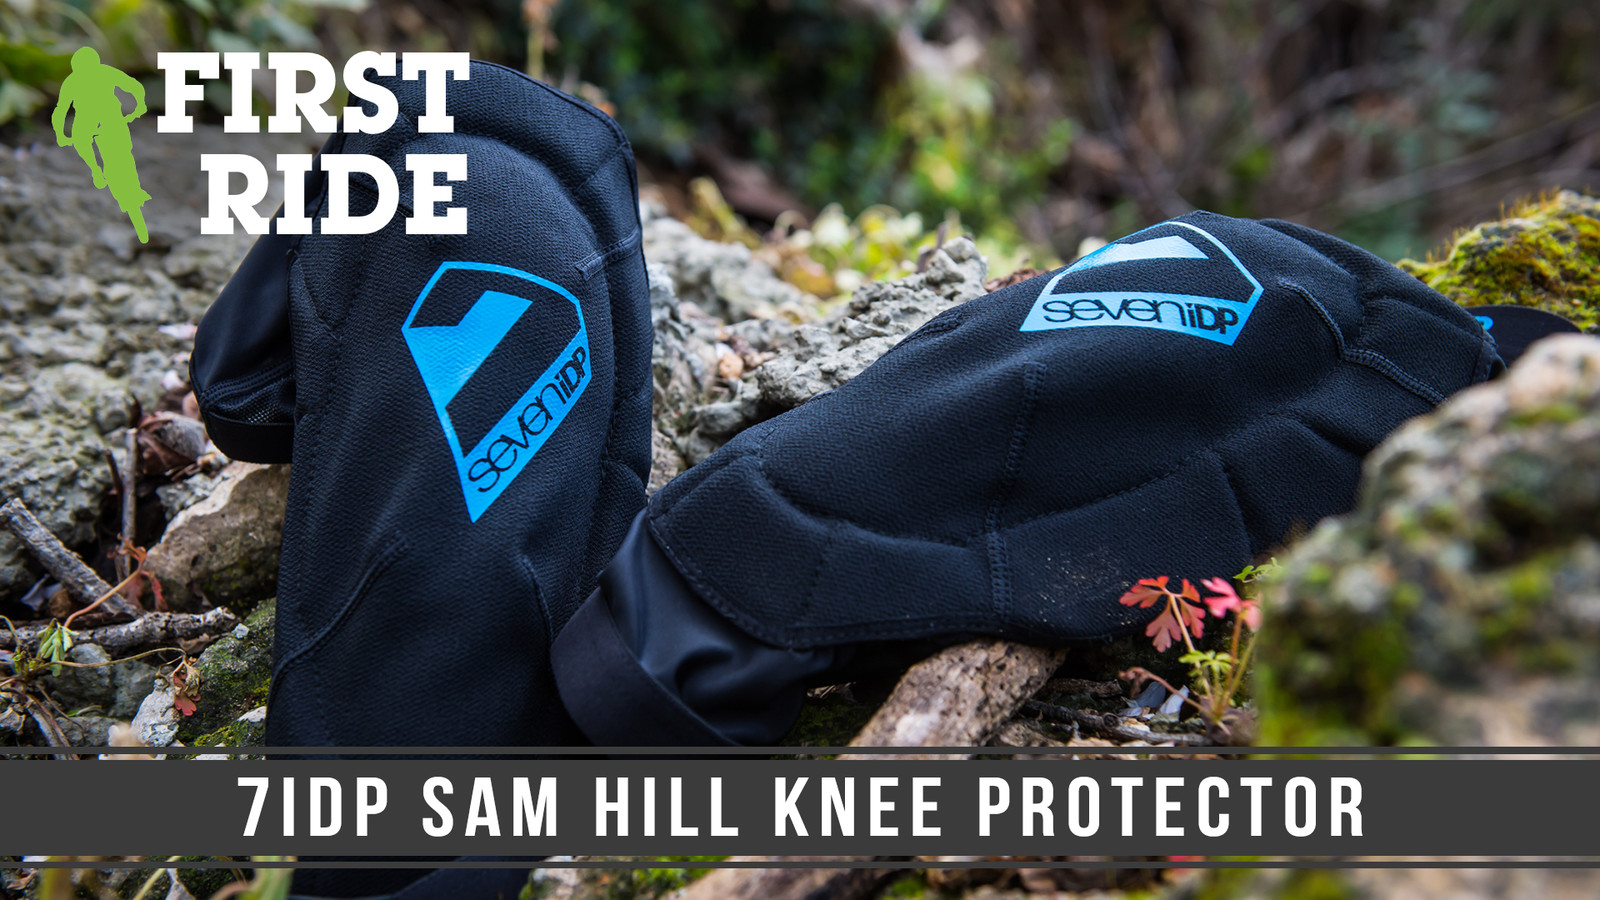 The Champ's New Pads: We Ride Sam Hill's Signature 7iDP Knee Protectors